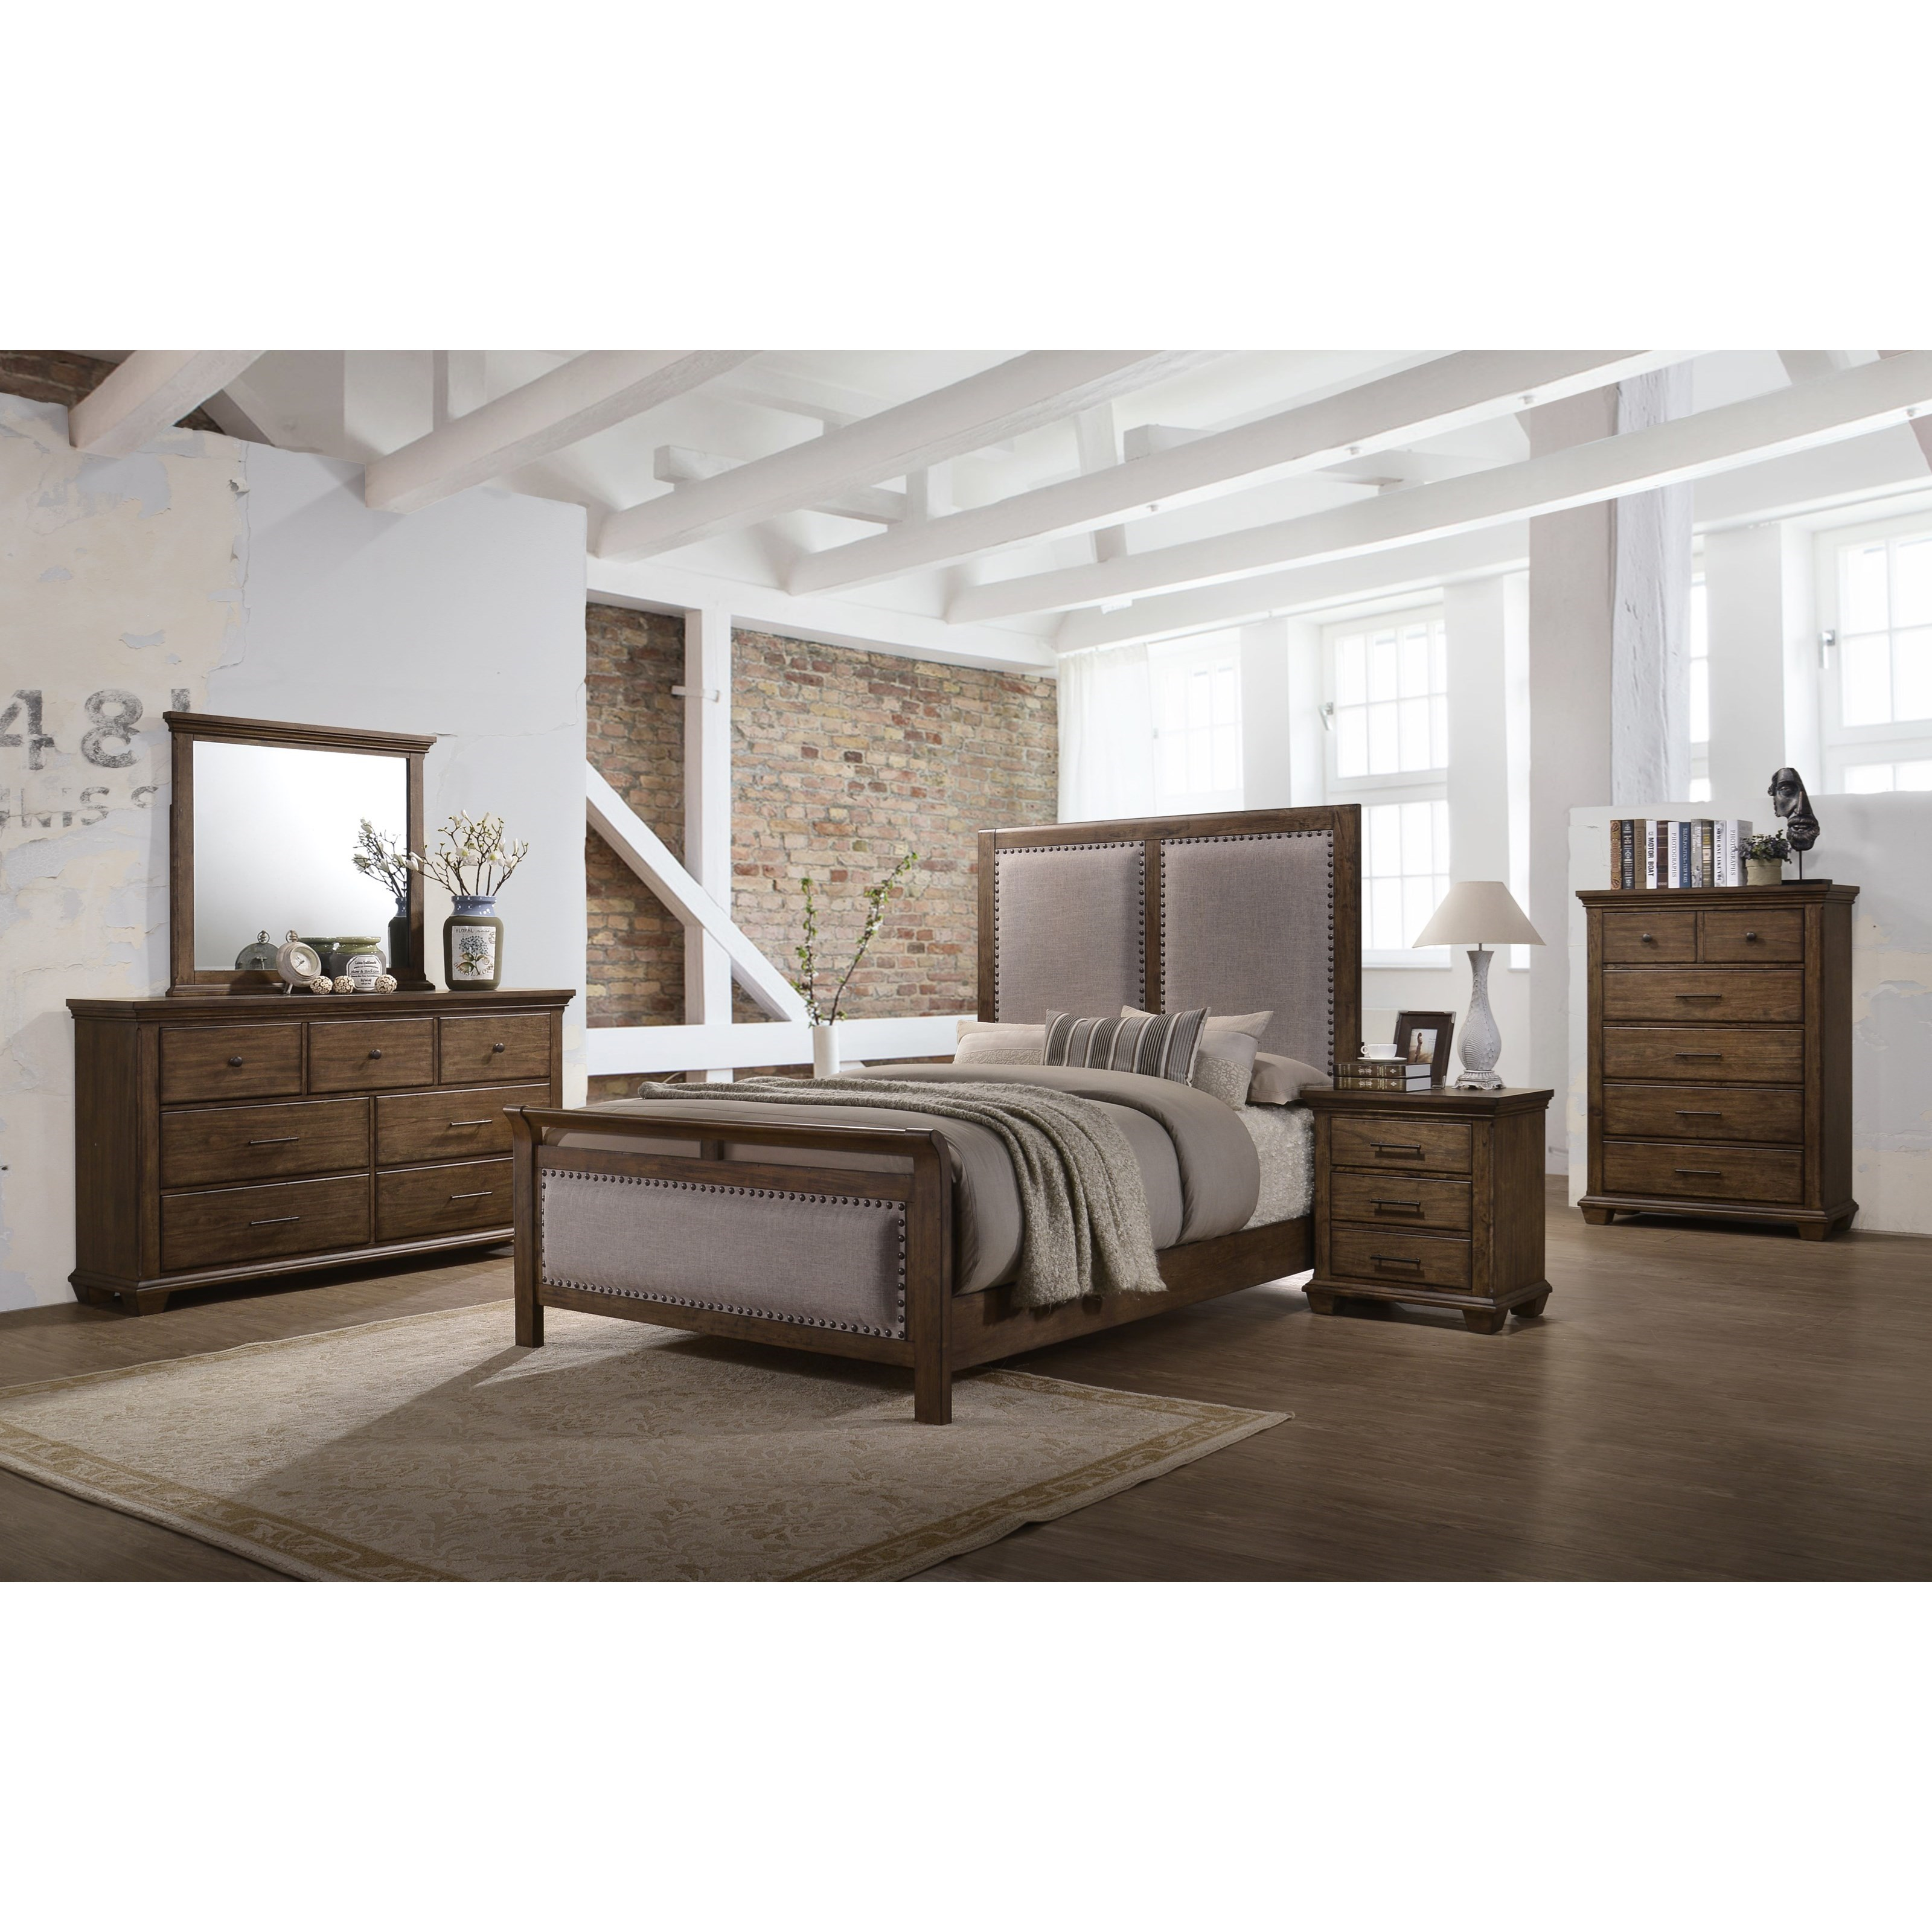 United Furniture Industries Carlton 1040 King Bedroom Group Household Furniture Bedroom Groups